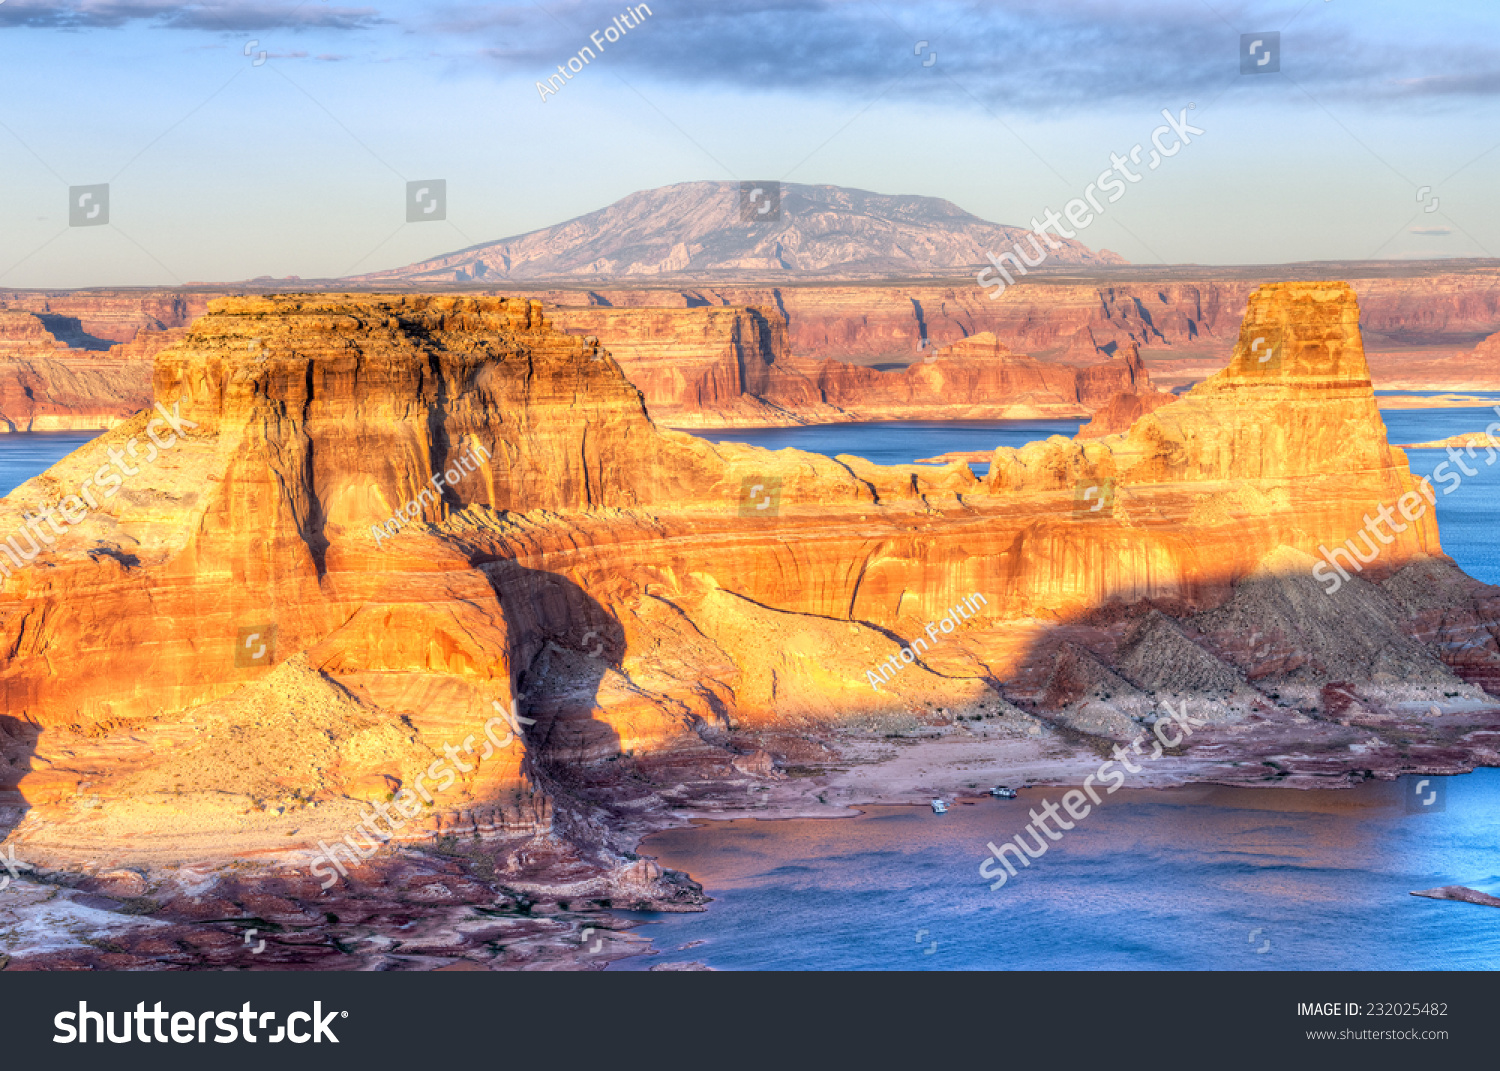 area canyon essay glen lake national photographic powell recreation Lake powell a photographic essay of glen canyon national recreation area companion press series essential guide to internal auditing 2nd edition sinumerik 810 t.